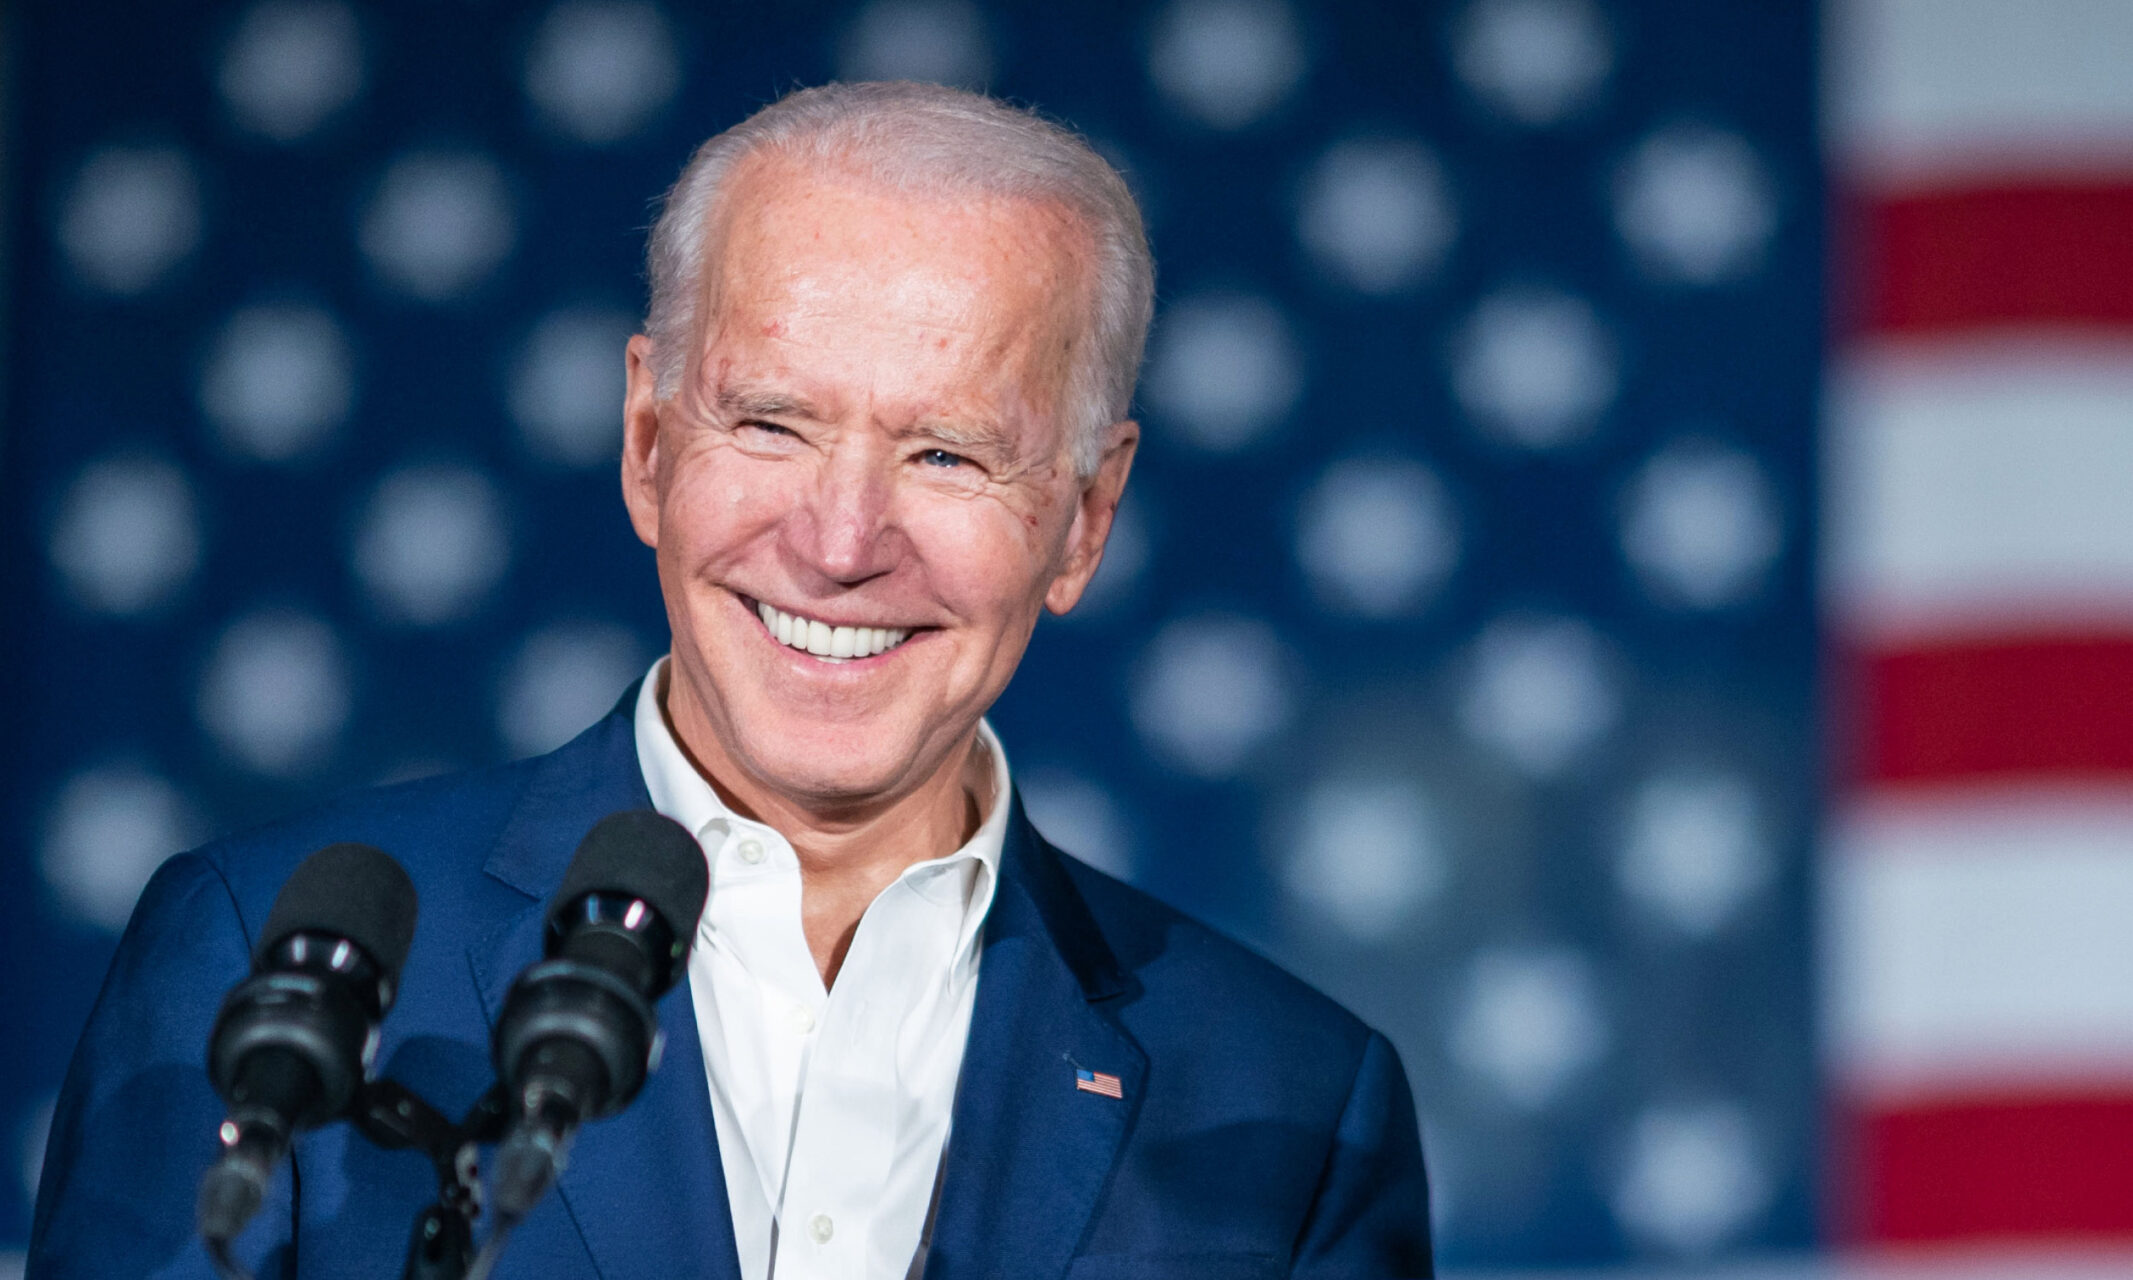 President Biden's First 100 Days: Hope, Health, and Prosperity